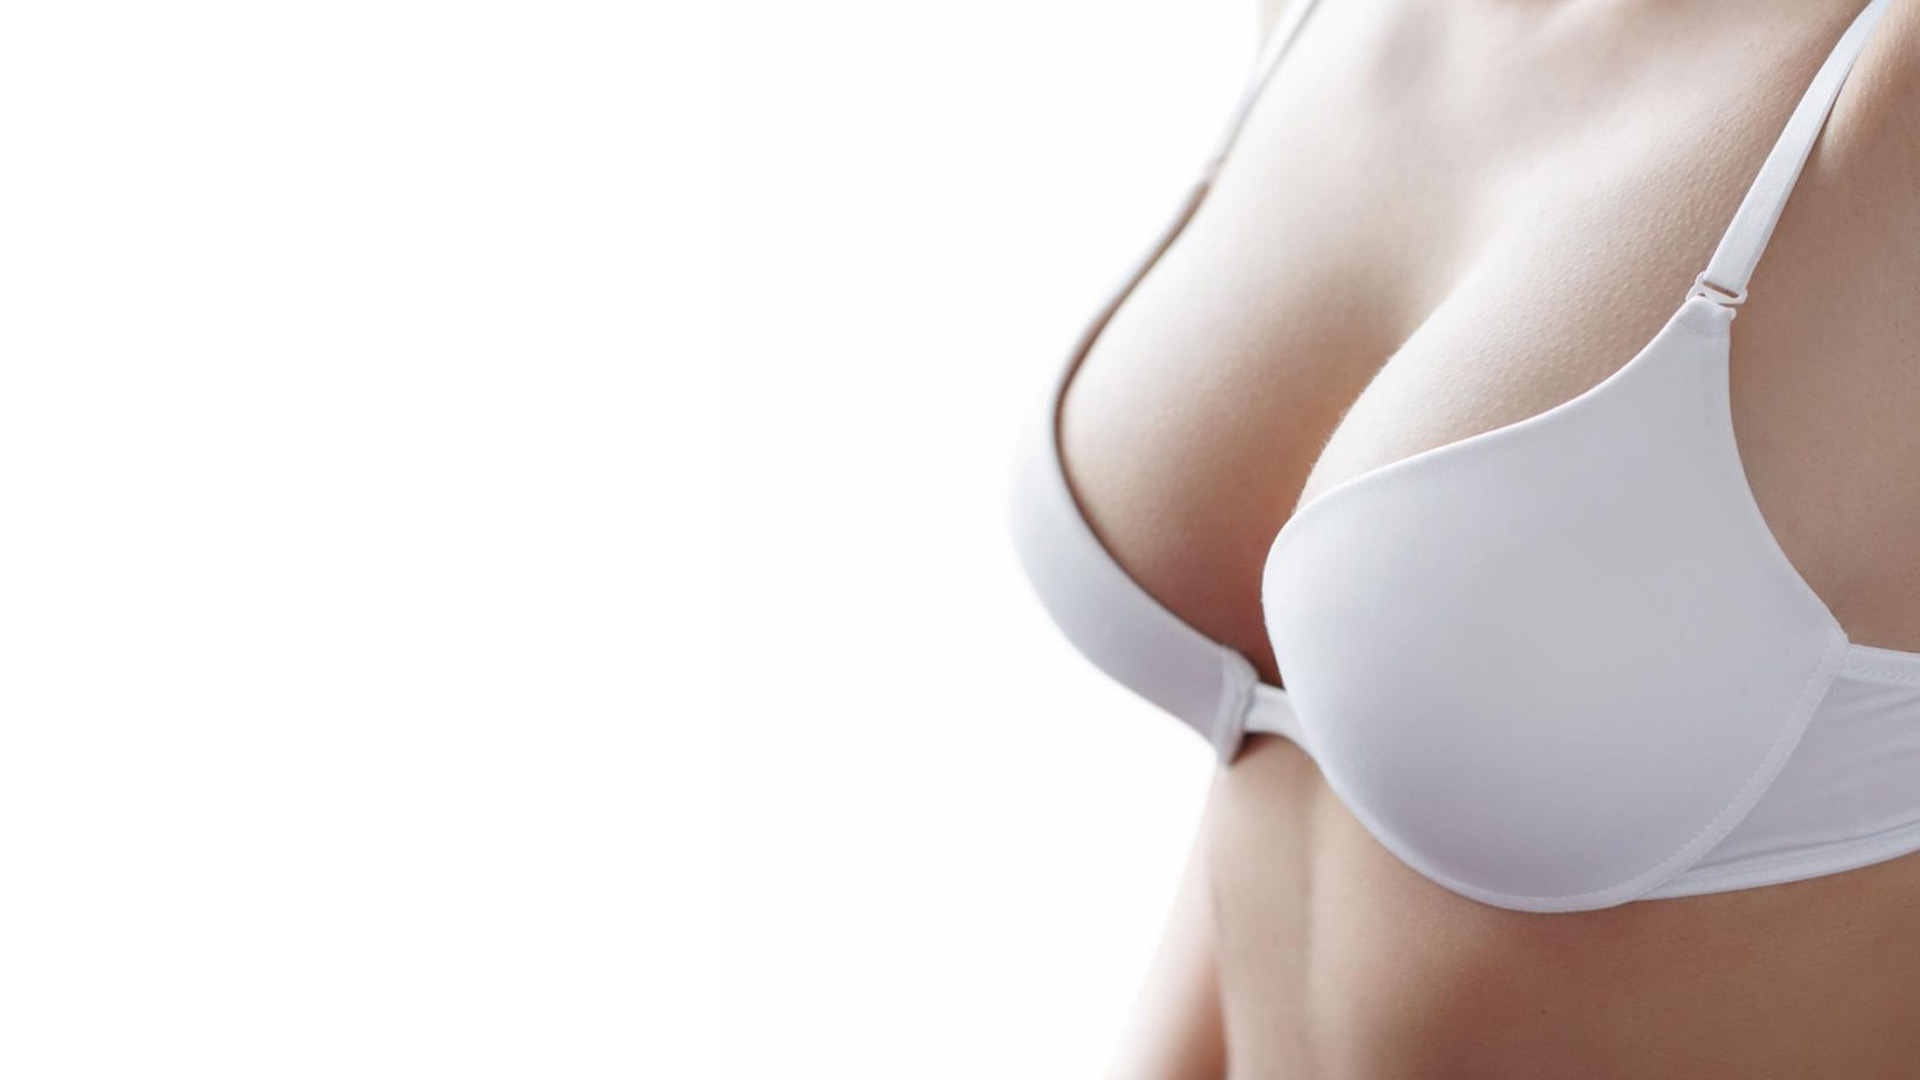 Prevent breast sagging after pregnancy with these tips